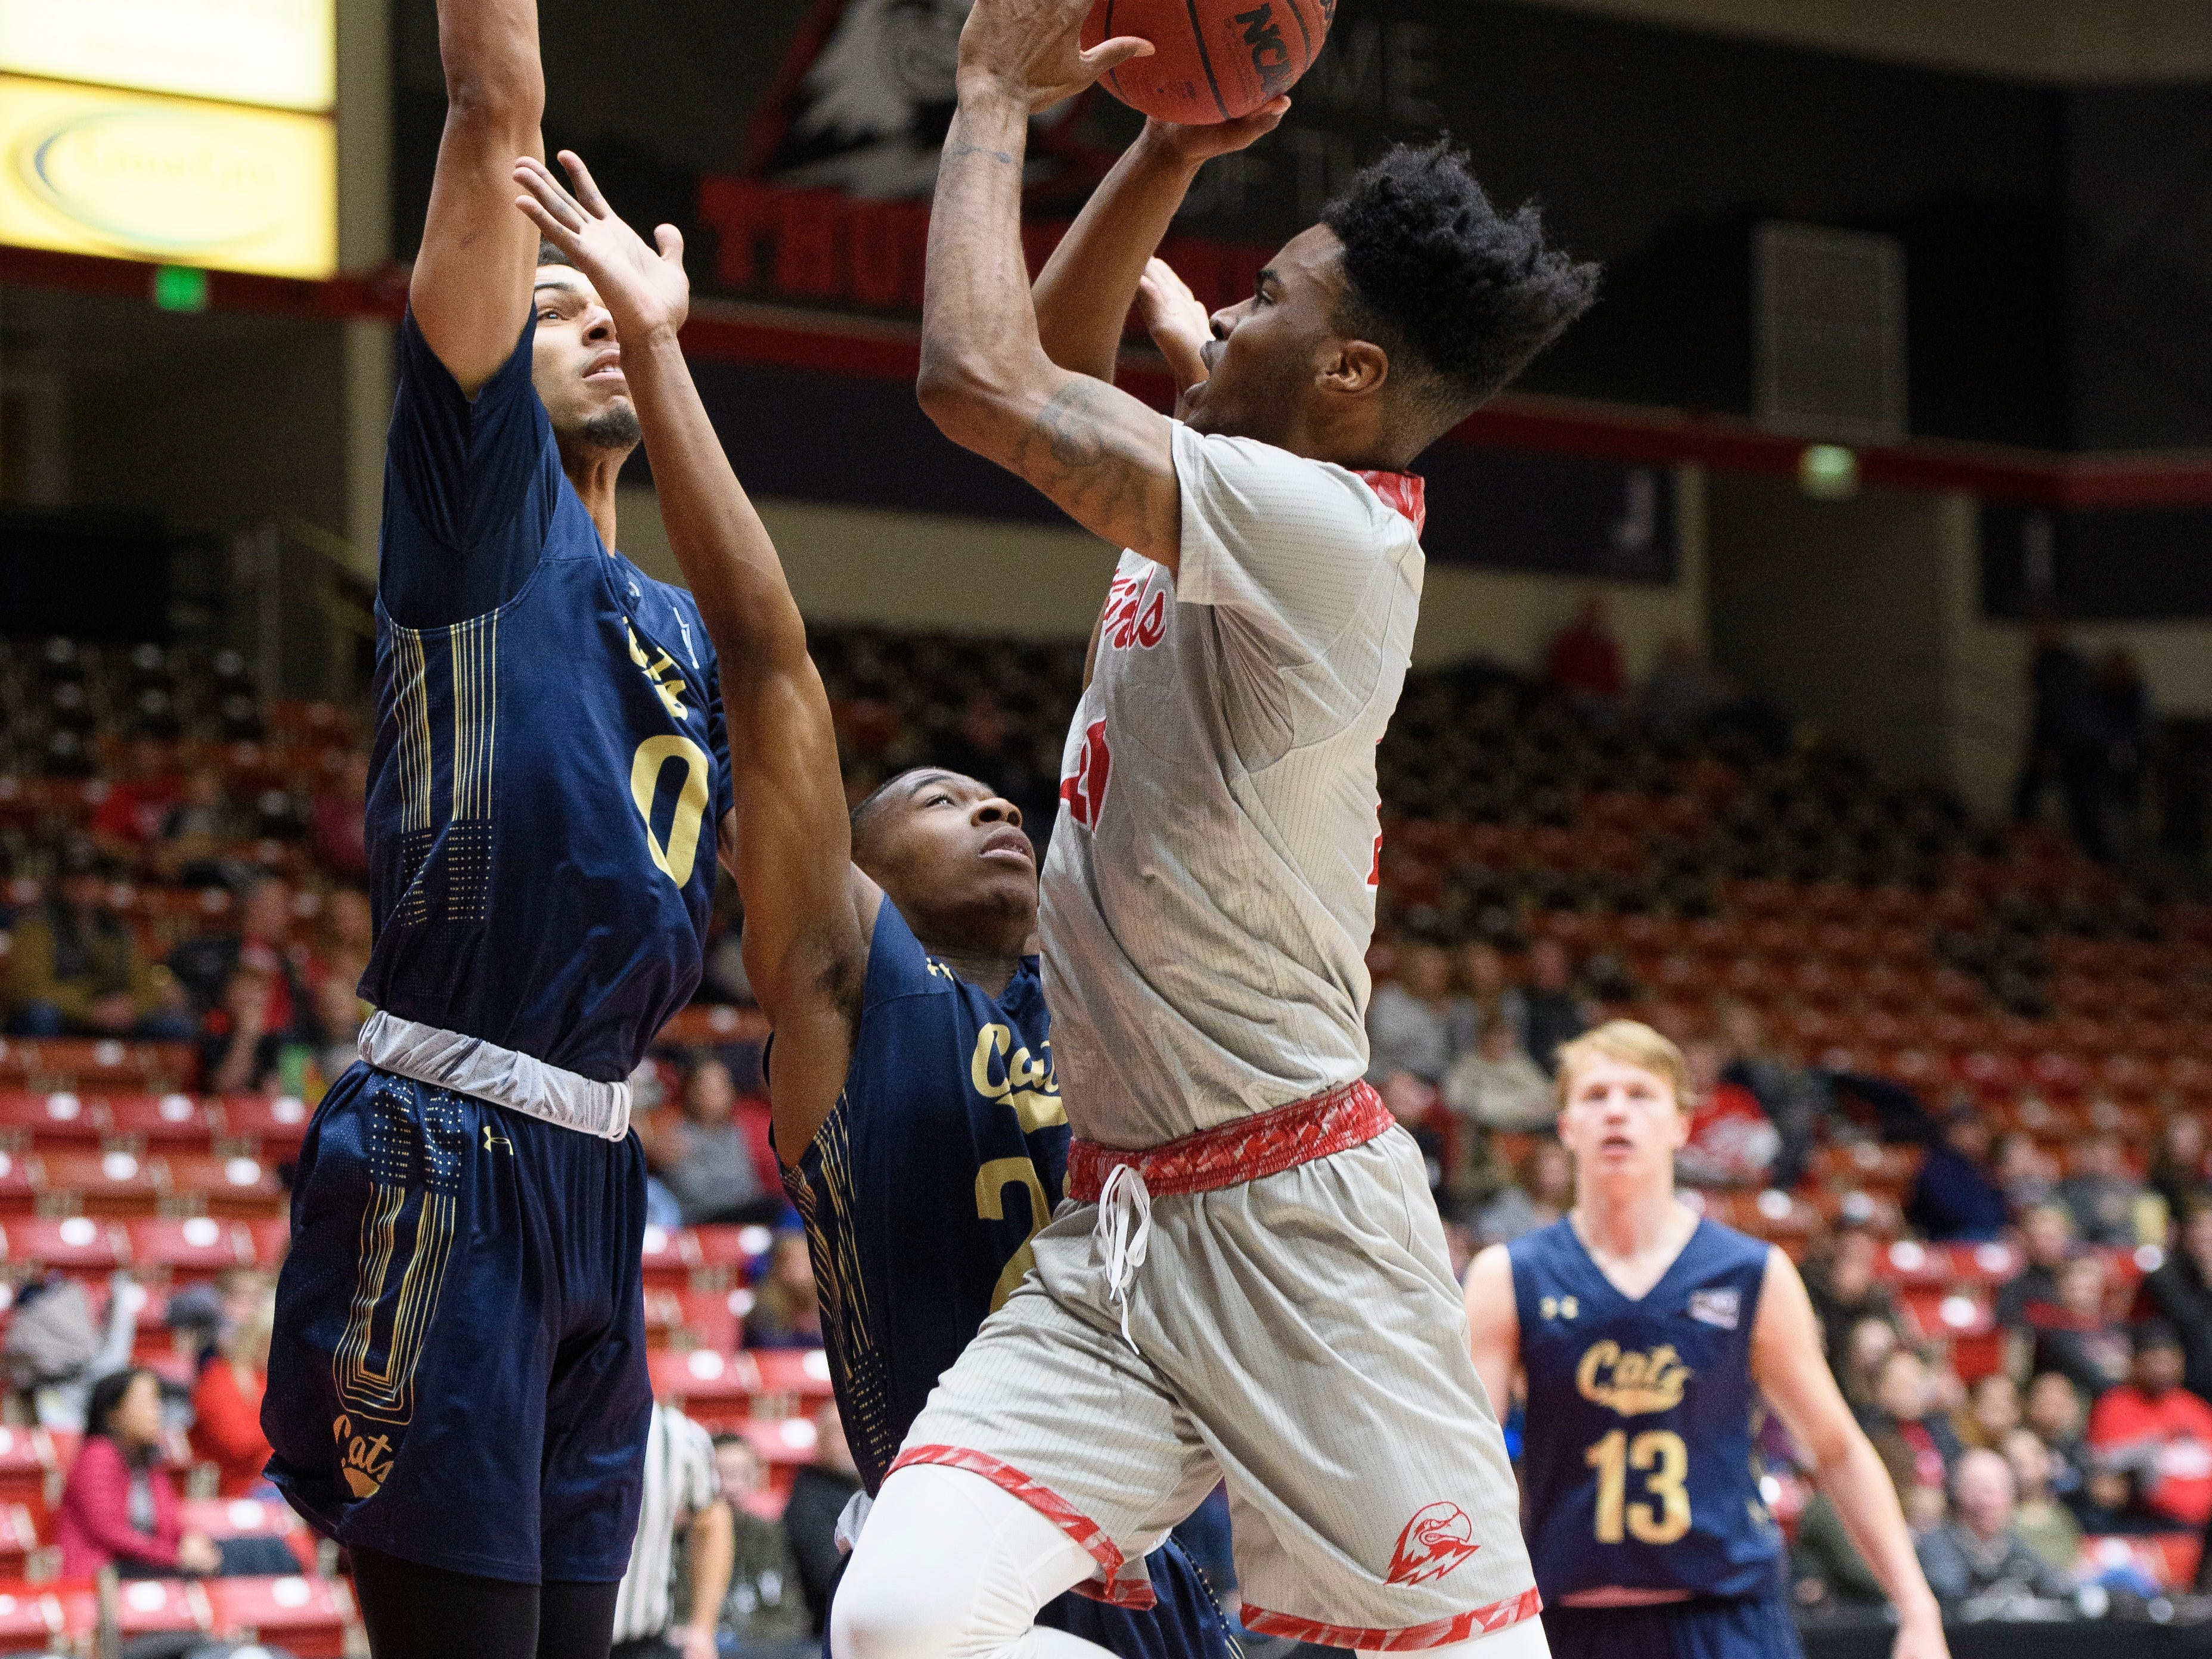 Southern Utah University junior Cameron Oluyitan (23) tries to shoot past two Montana State defenders during the game in the America First Event Center Saturday, December 29, 2018. SUU lost, 92-62.